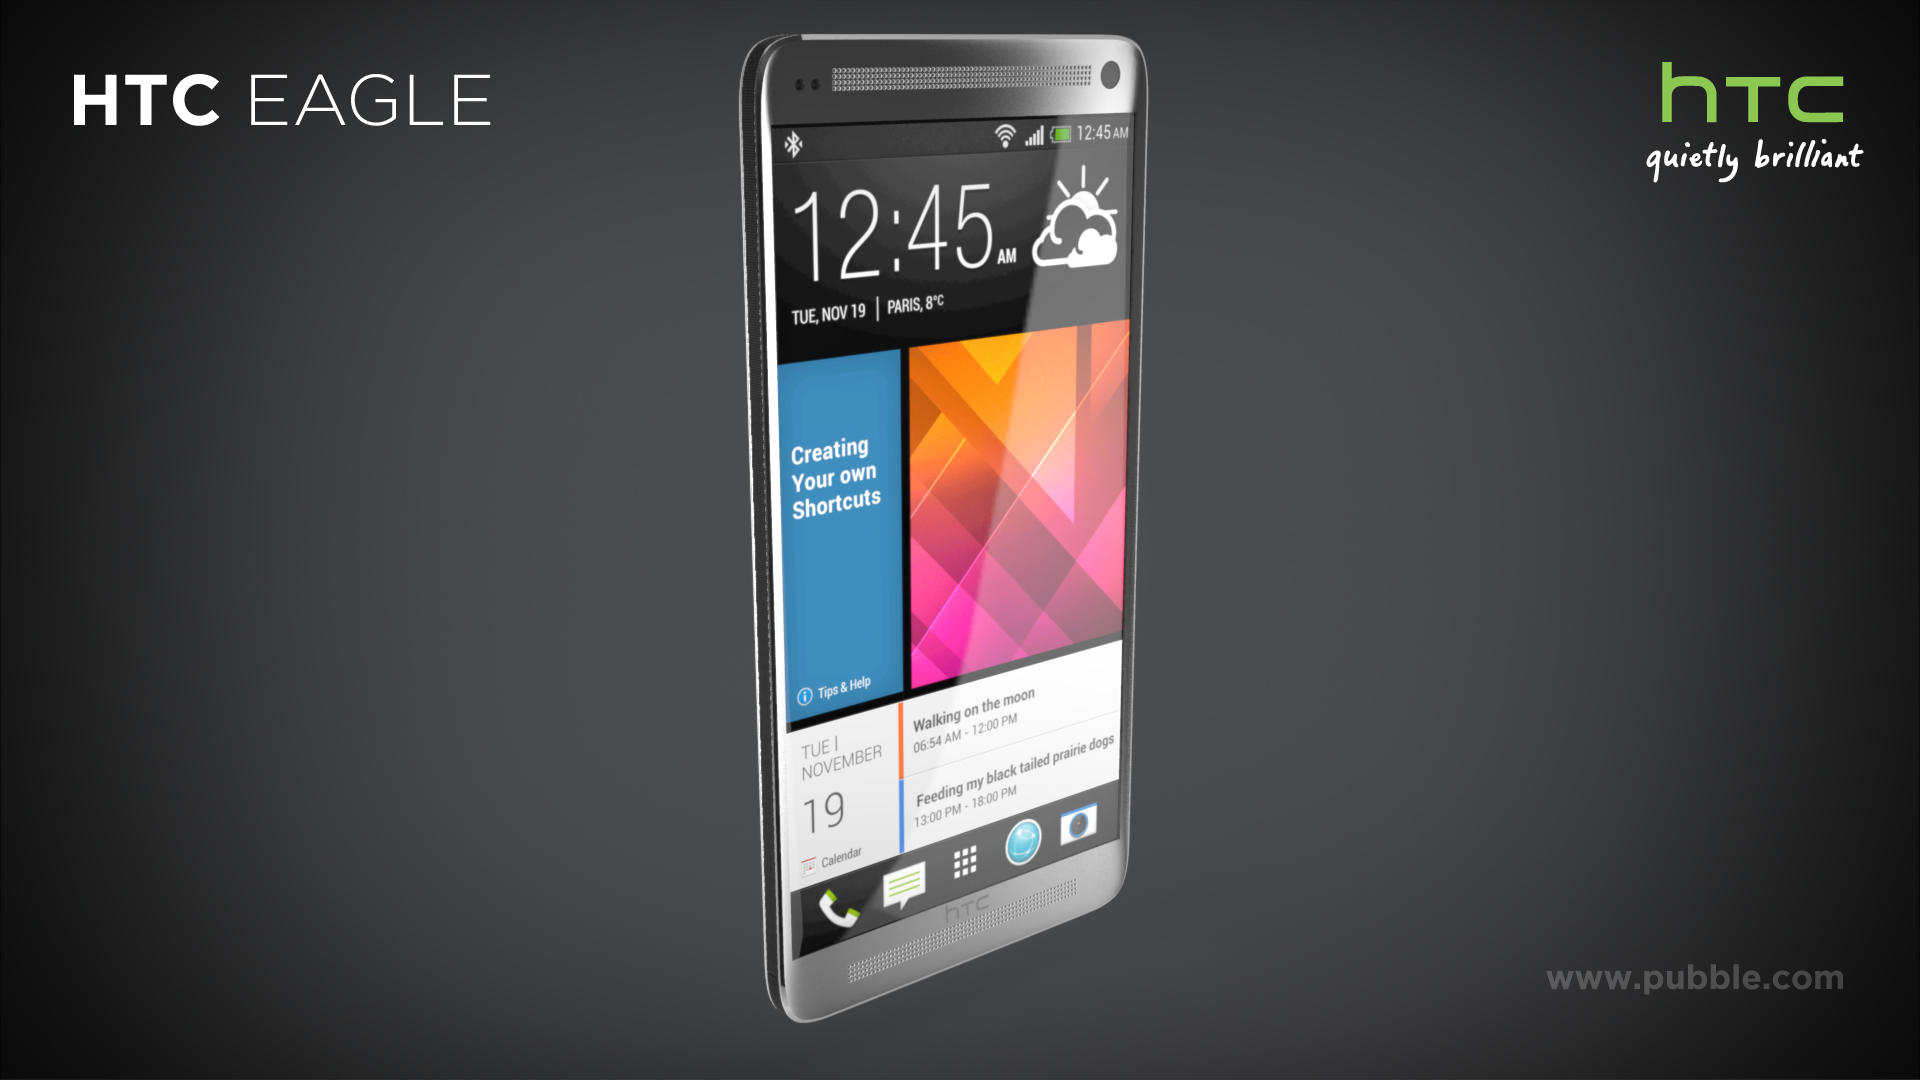 HTC Eagle - Face dynamique